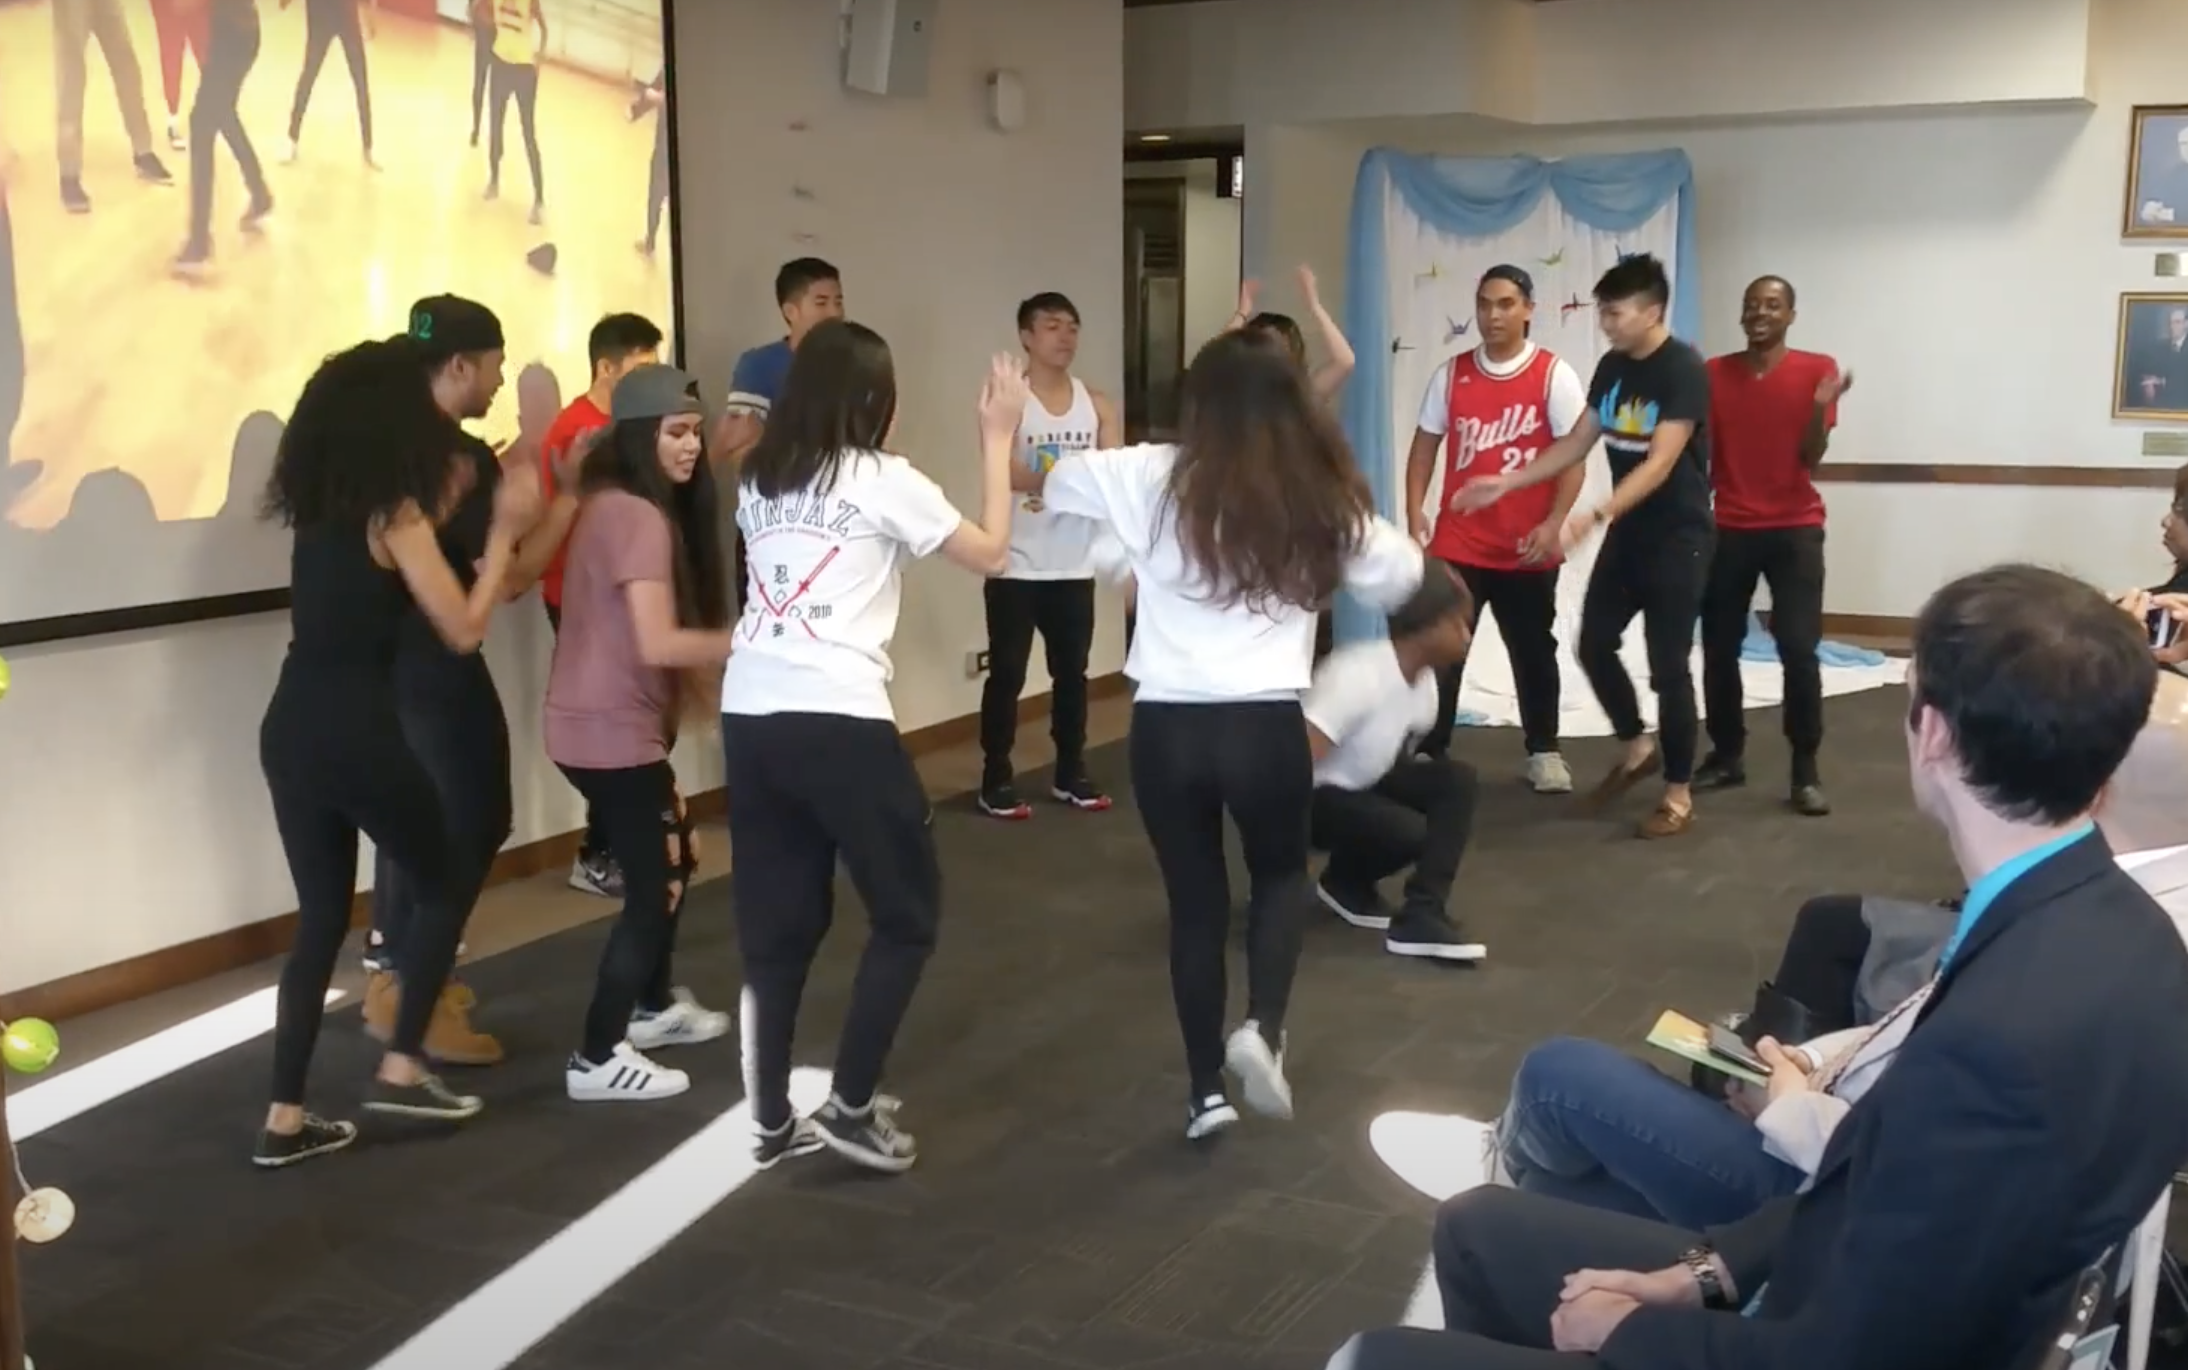 One circle of dancers of many races surrounds one mixed Black and Asian man dancing in the center